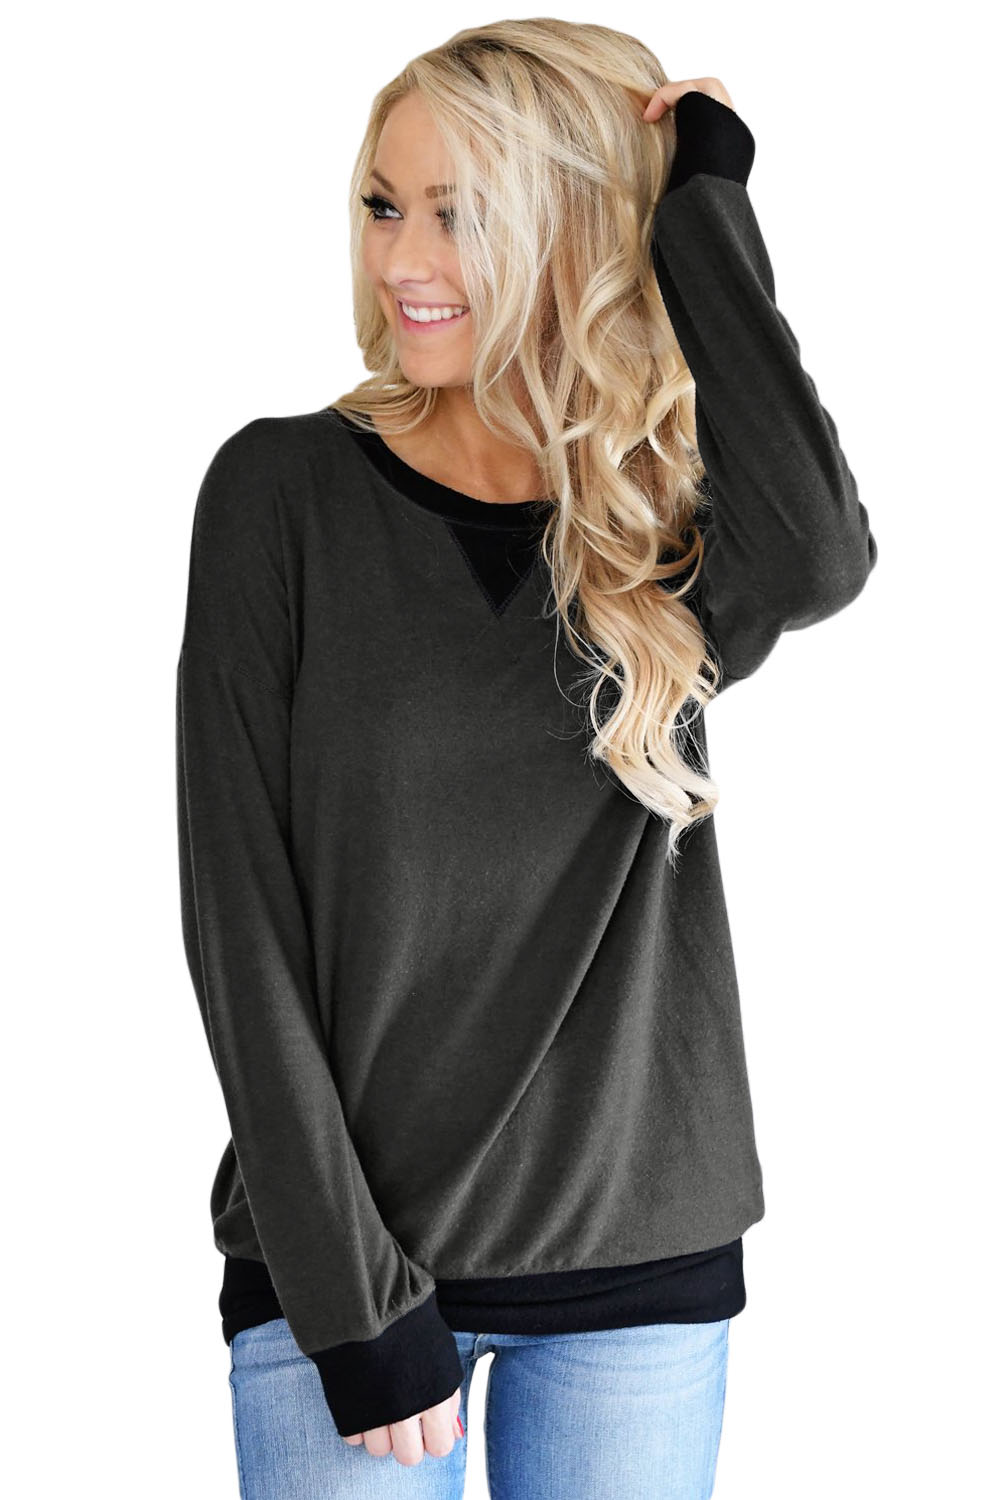 Wholesale Sweatshirts Amp Hoodies Cheap Charcoal Raglan